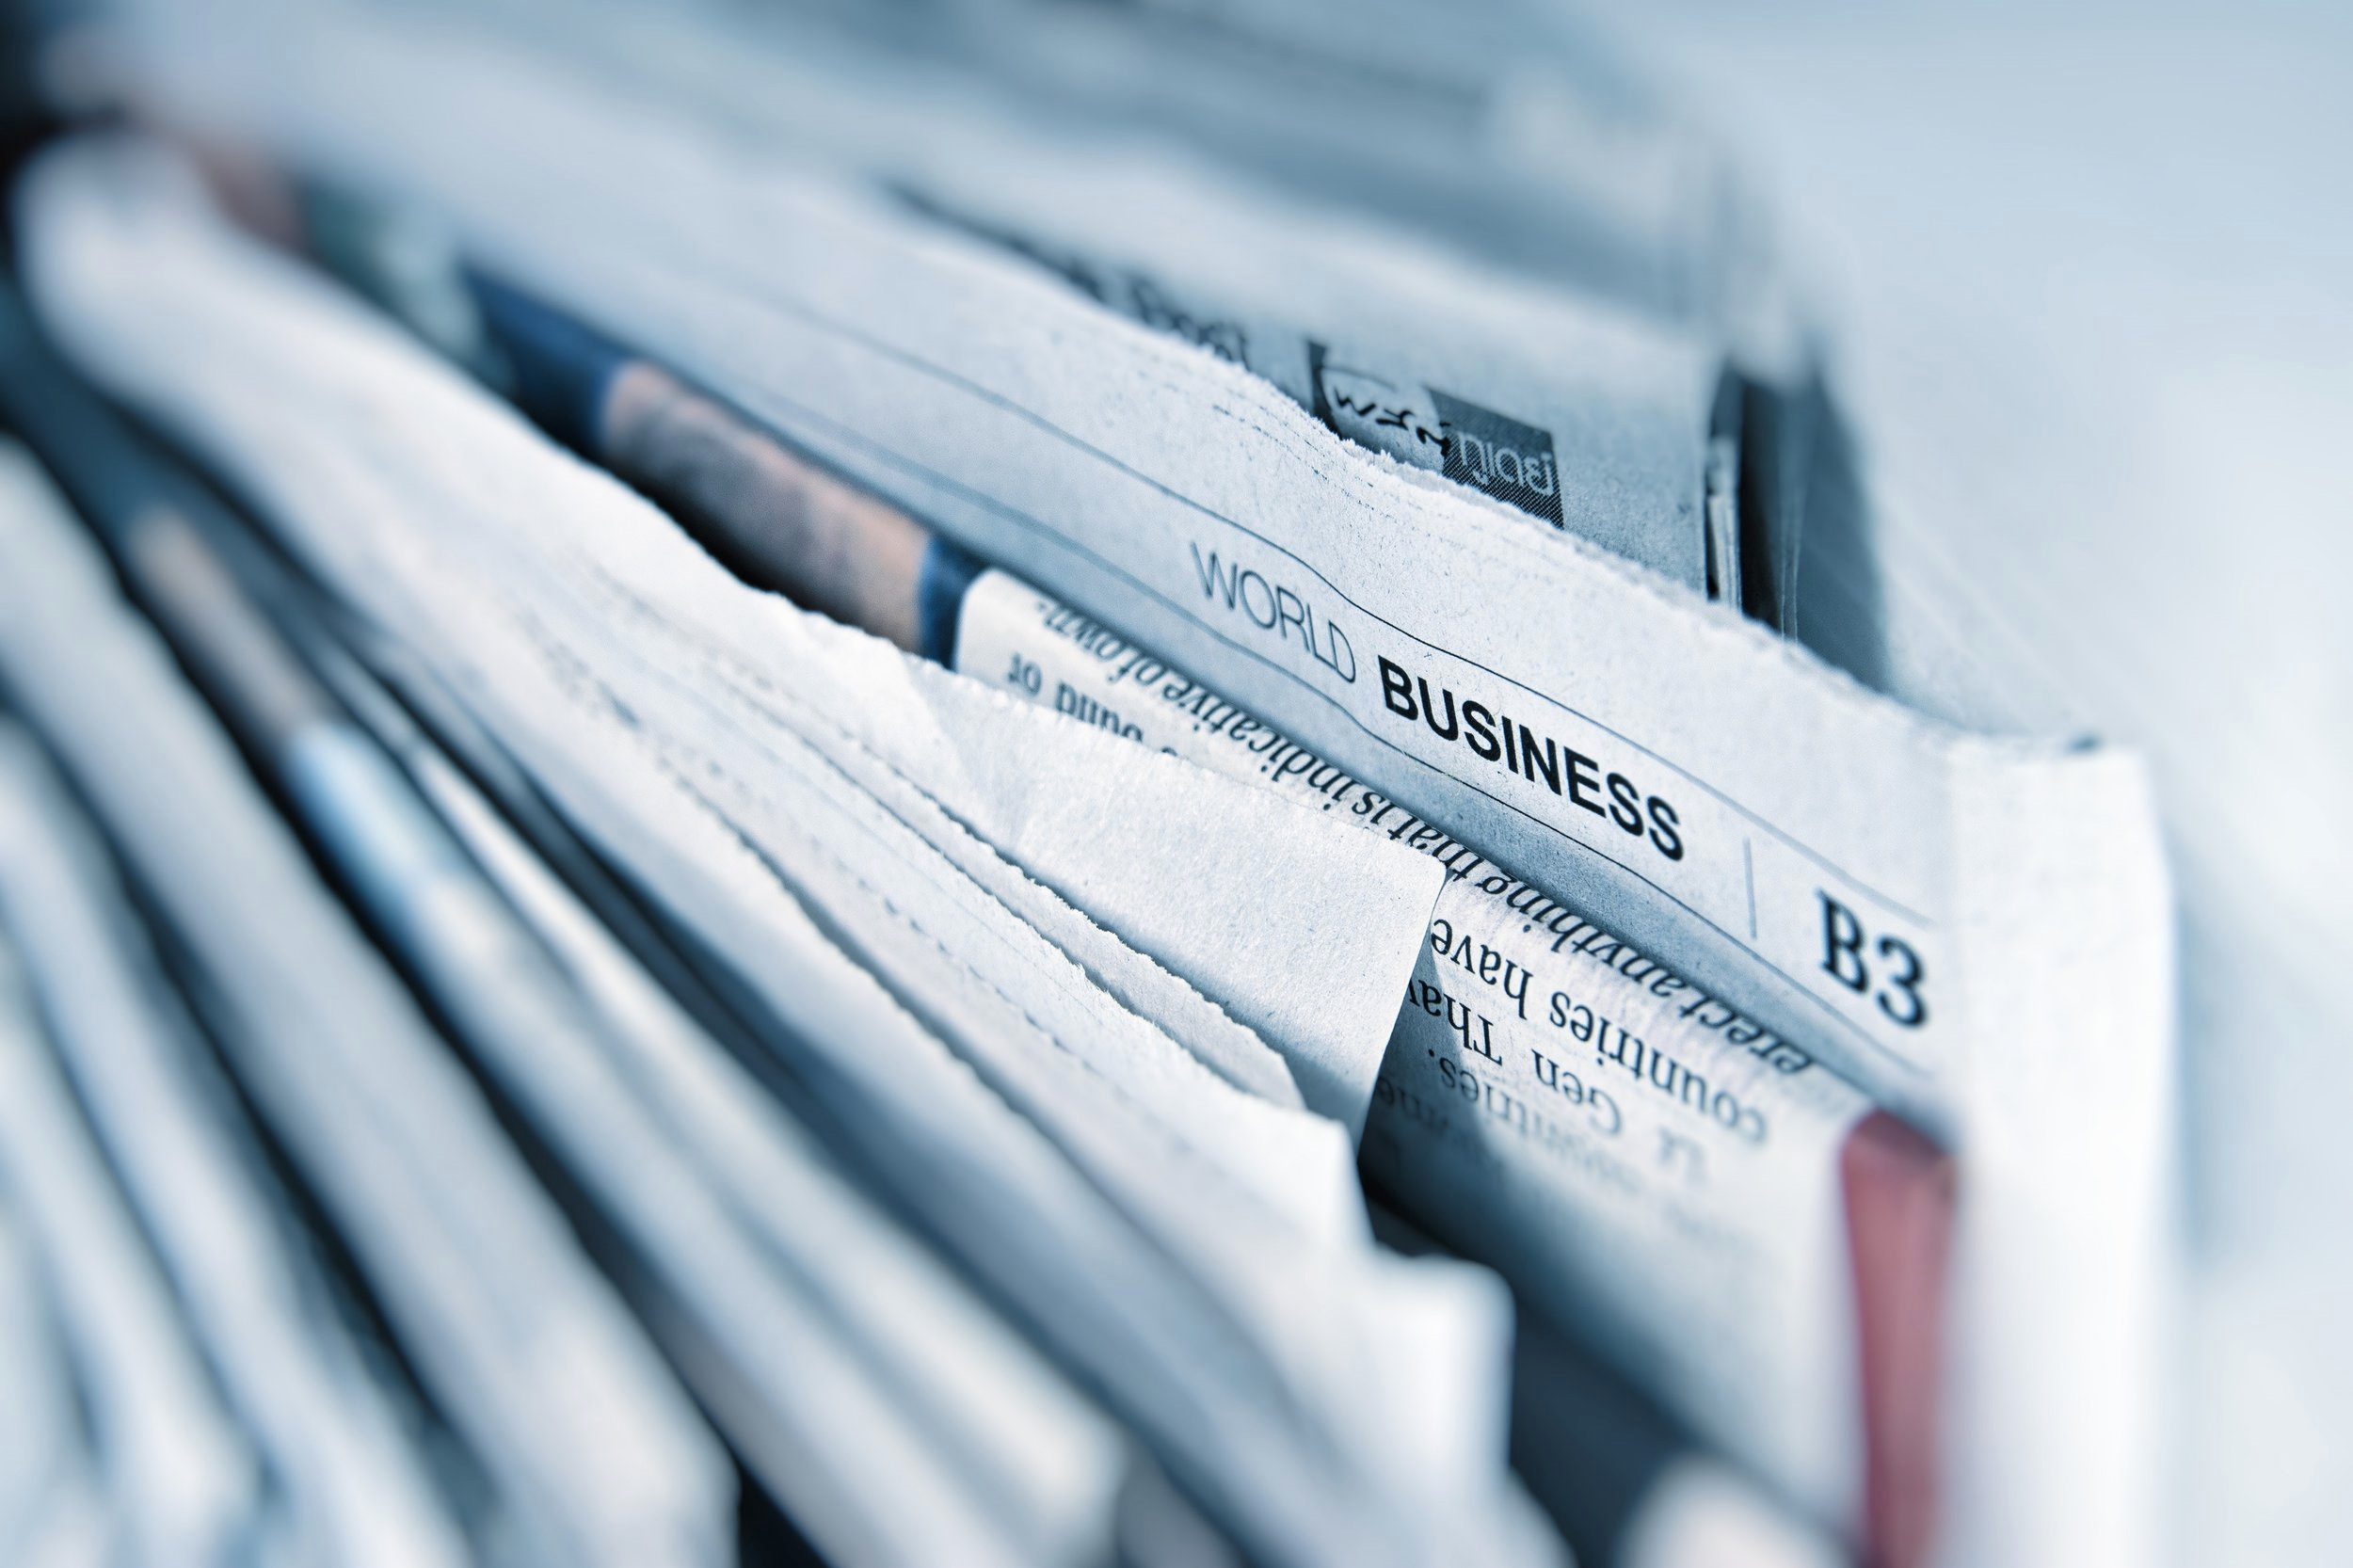 Orders shipped using recycled newspaper and packing material -